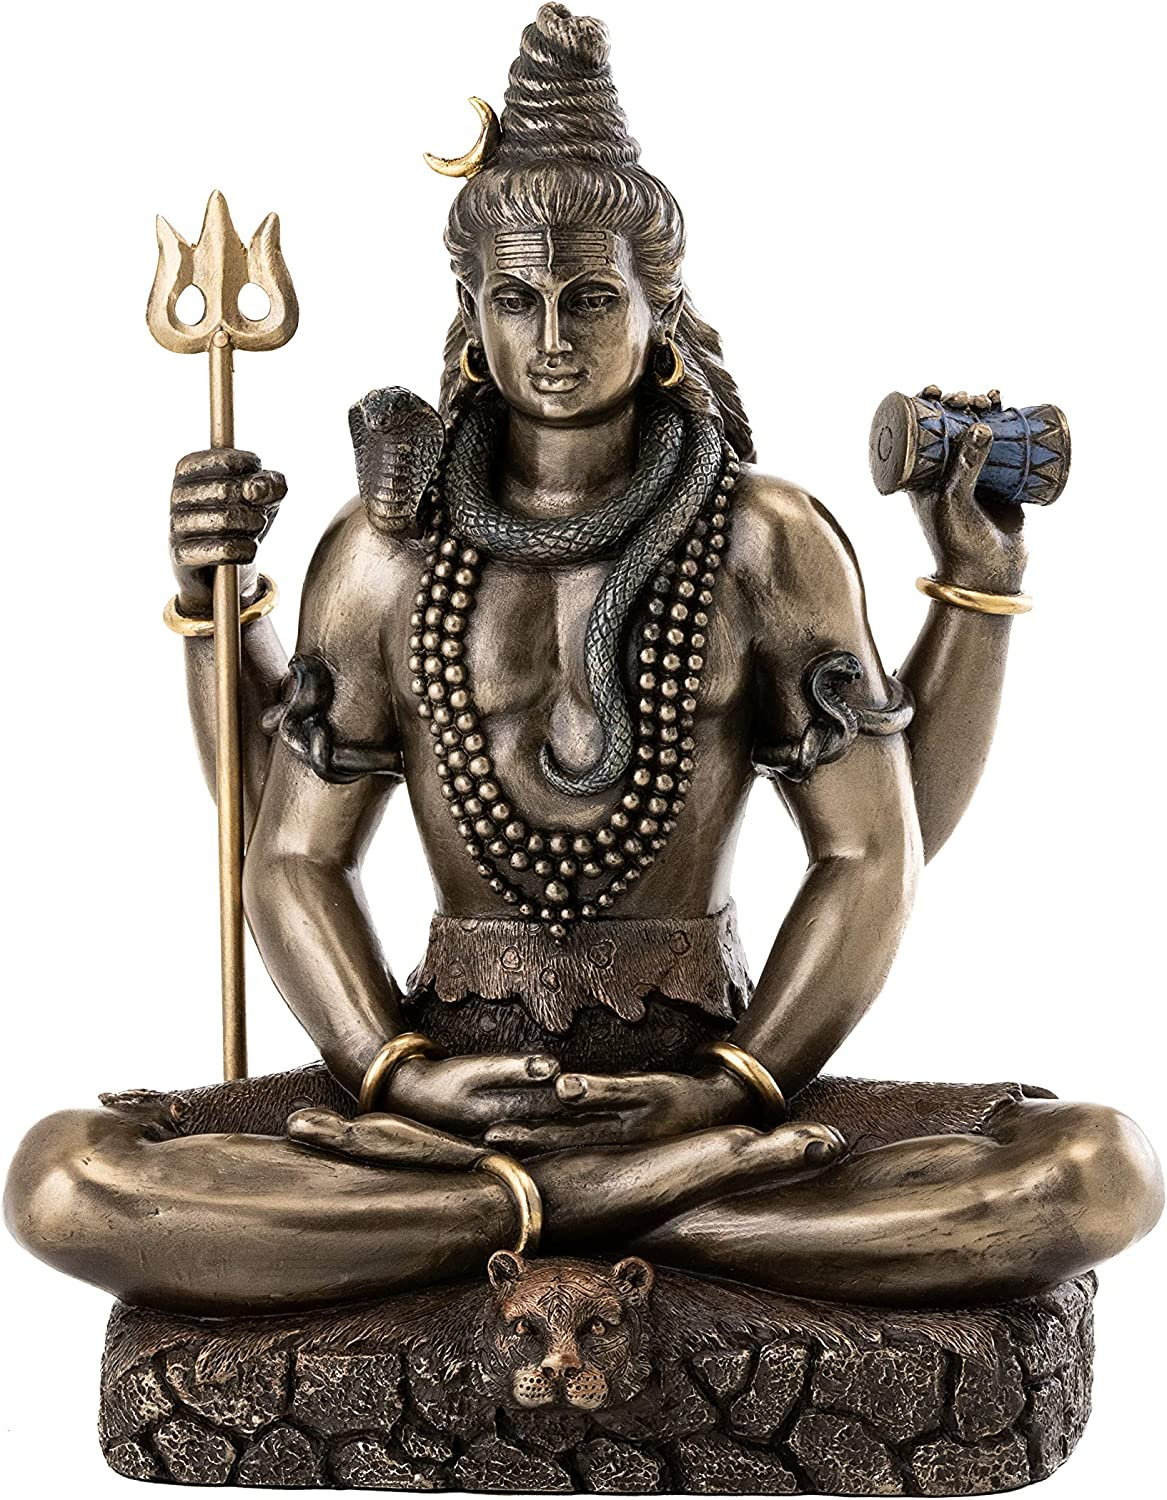 Top Collection Shiva Statue in God of Ranking Super beauty product restock quality top! TOP13 Padmasana Lotus Pose-Hindu